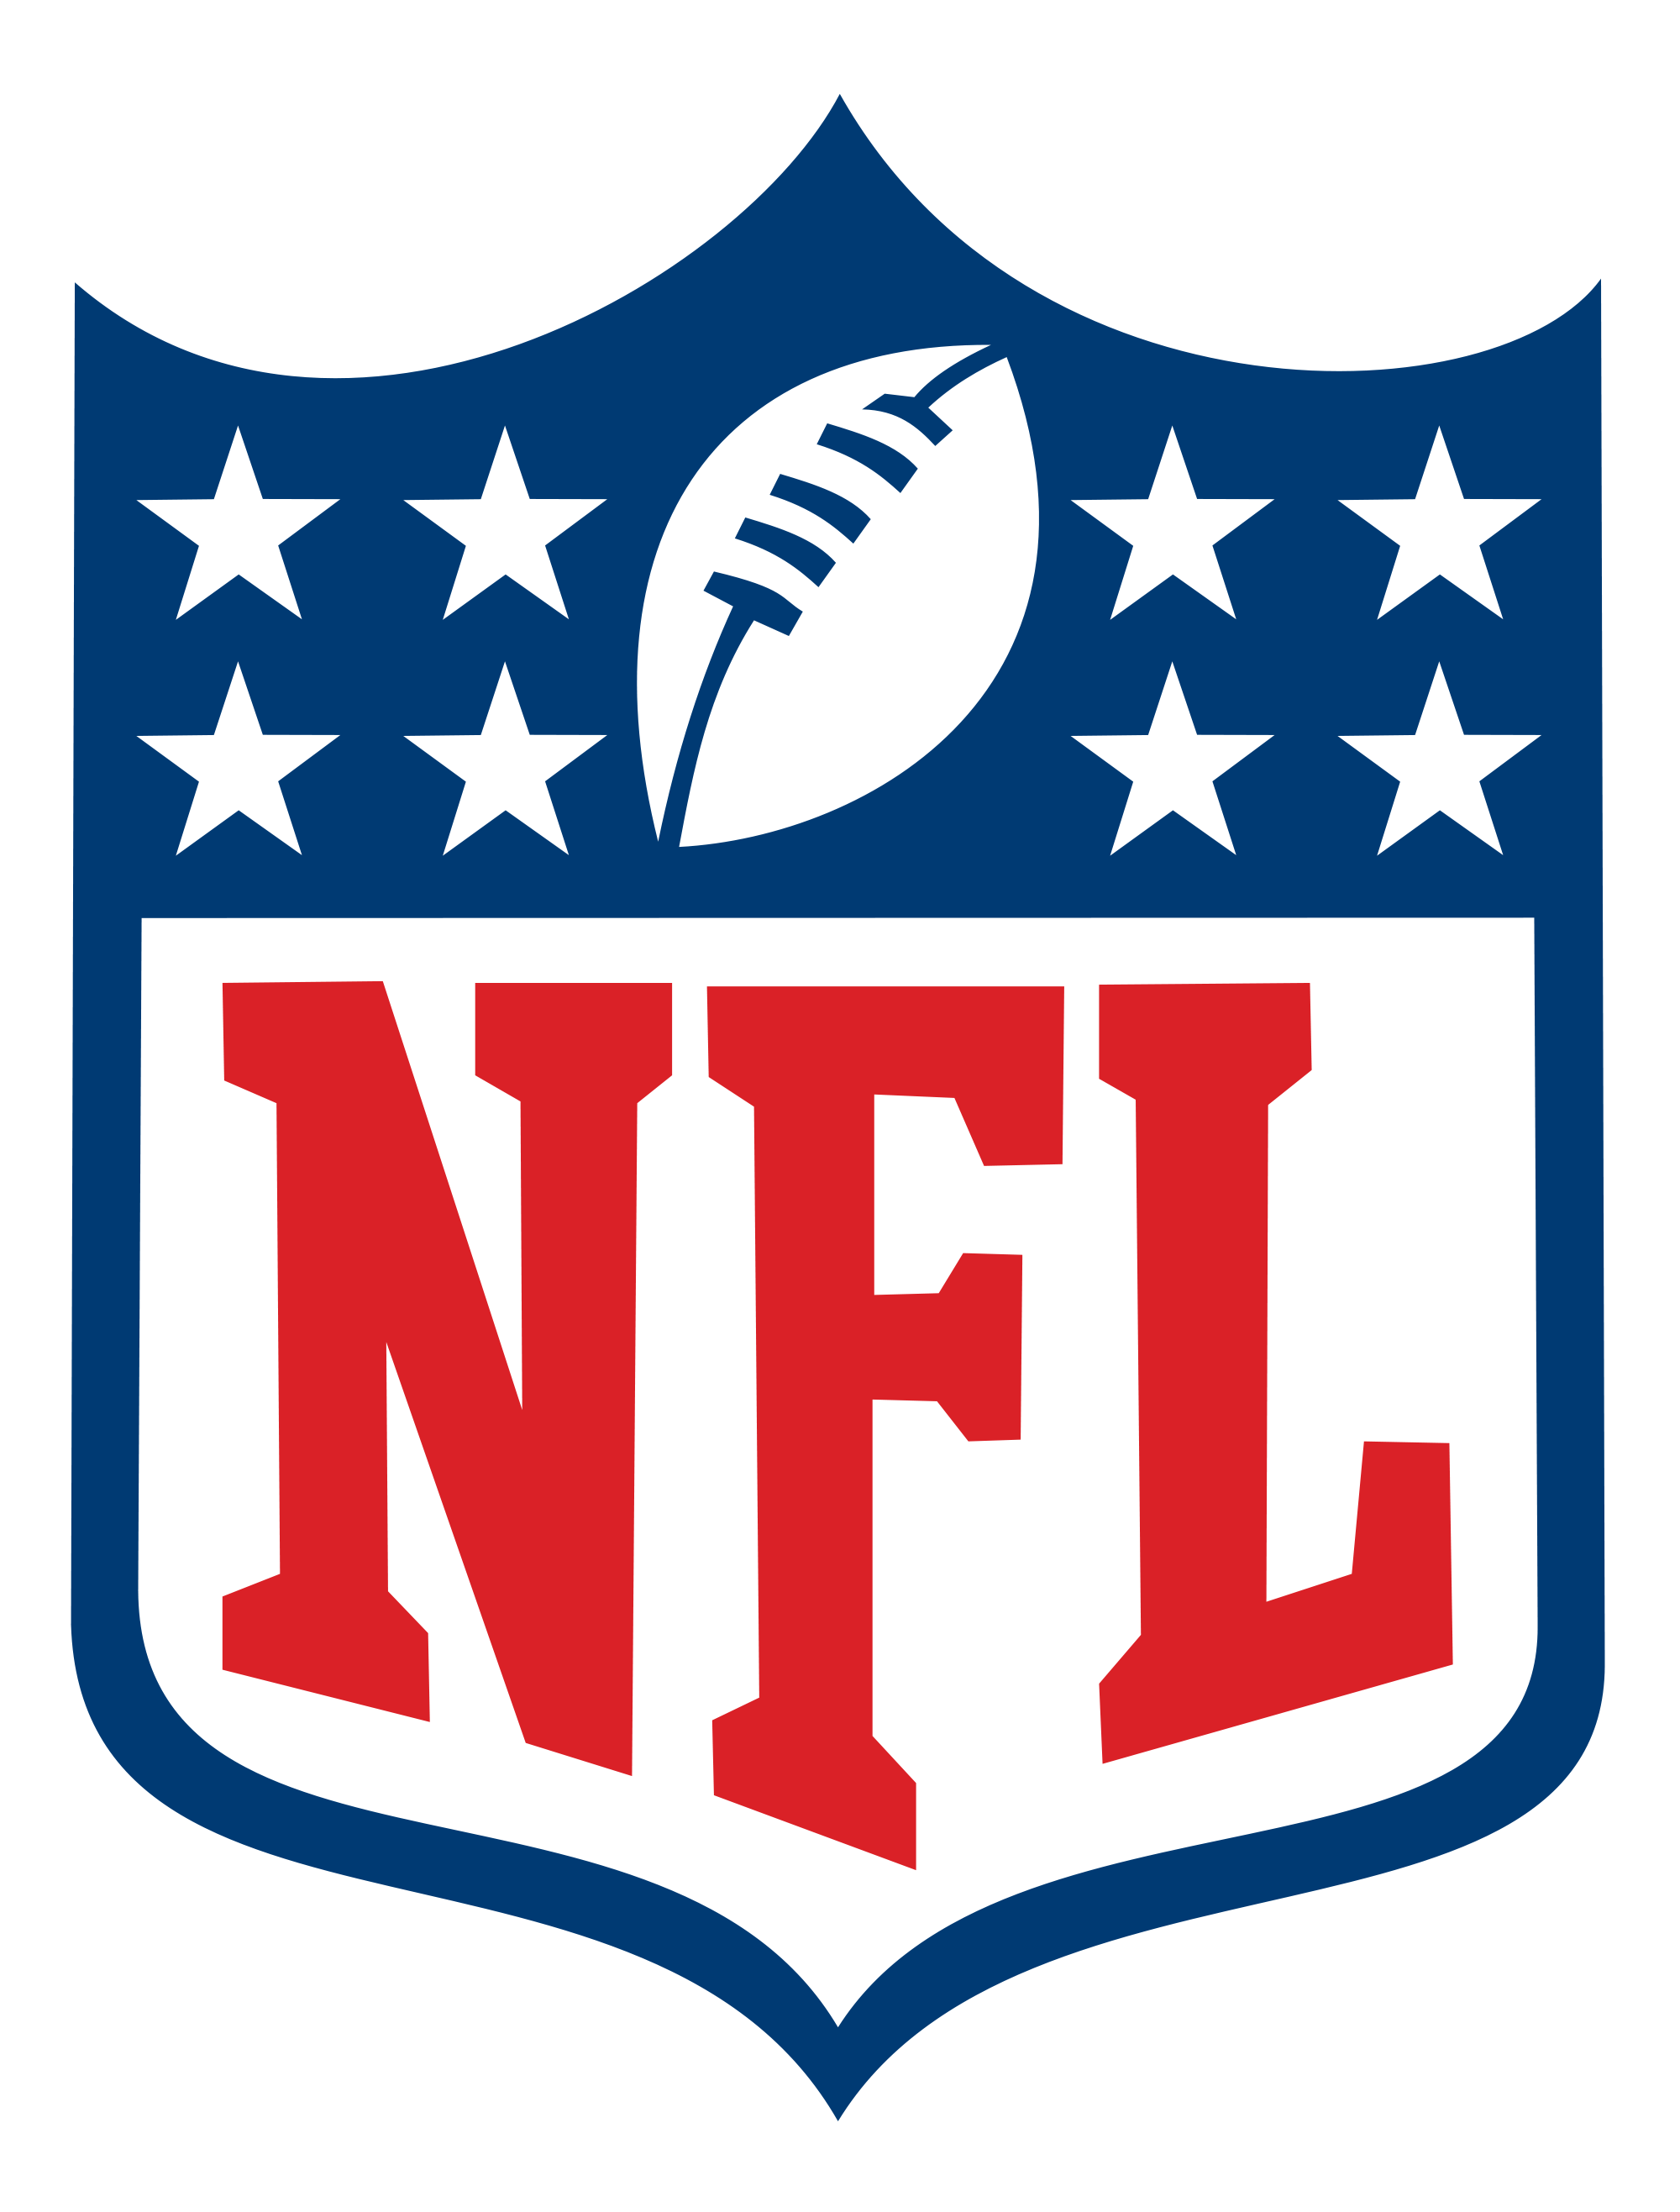 National Football League NFL logo